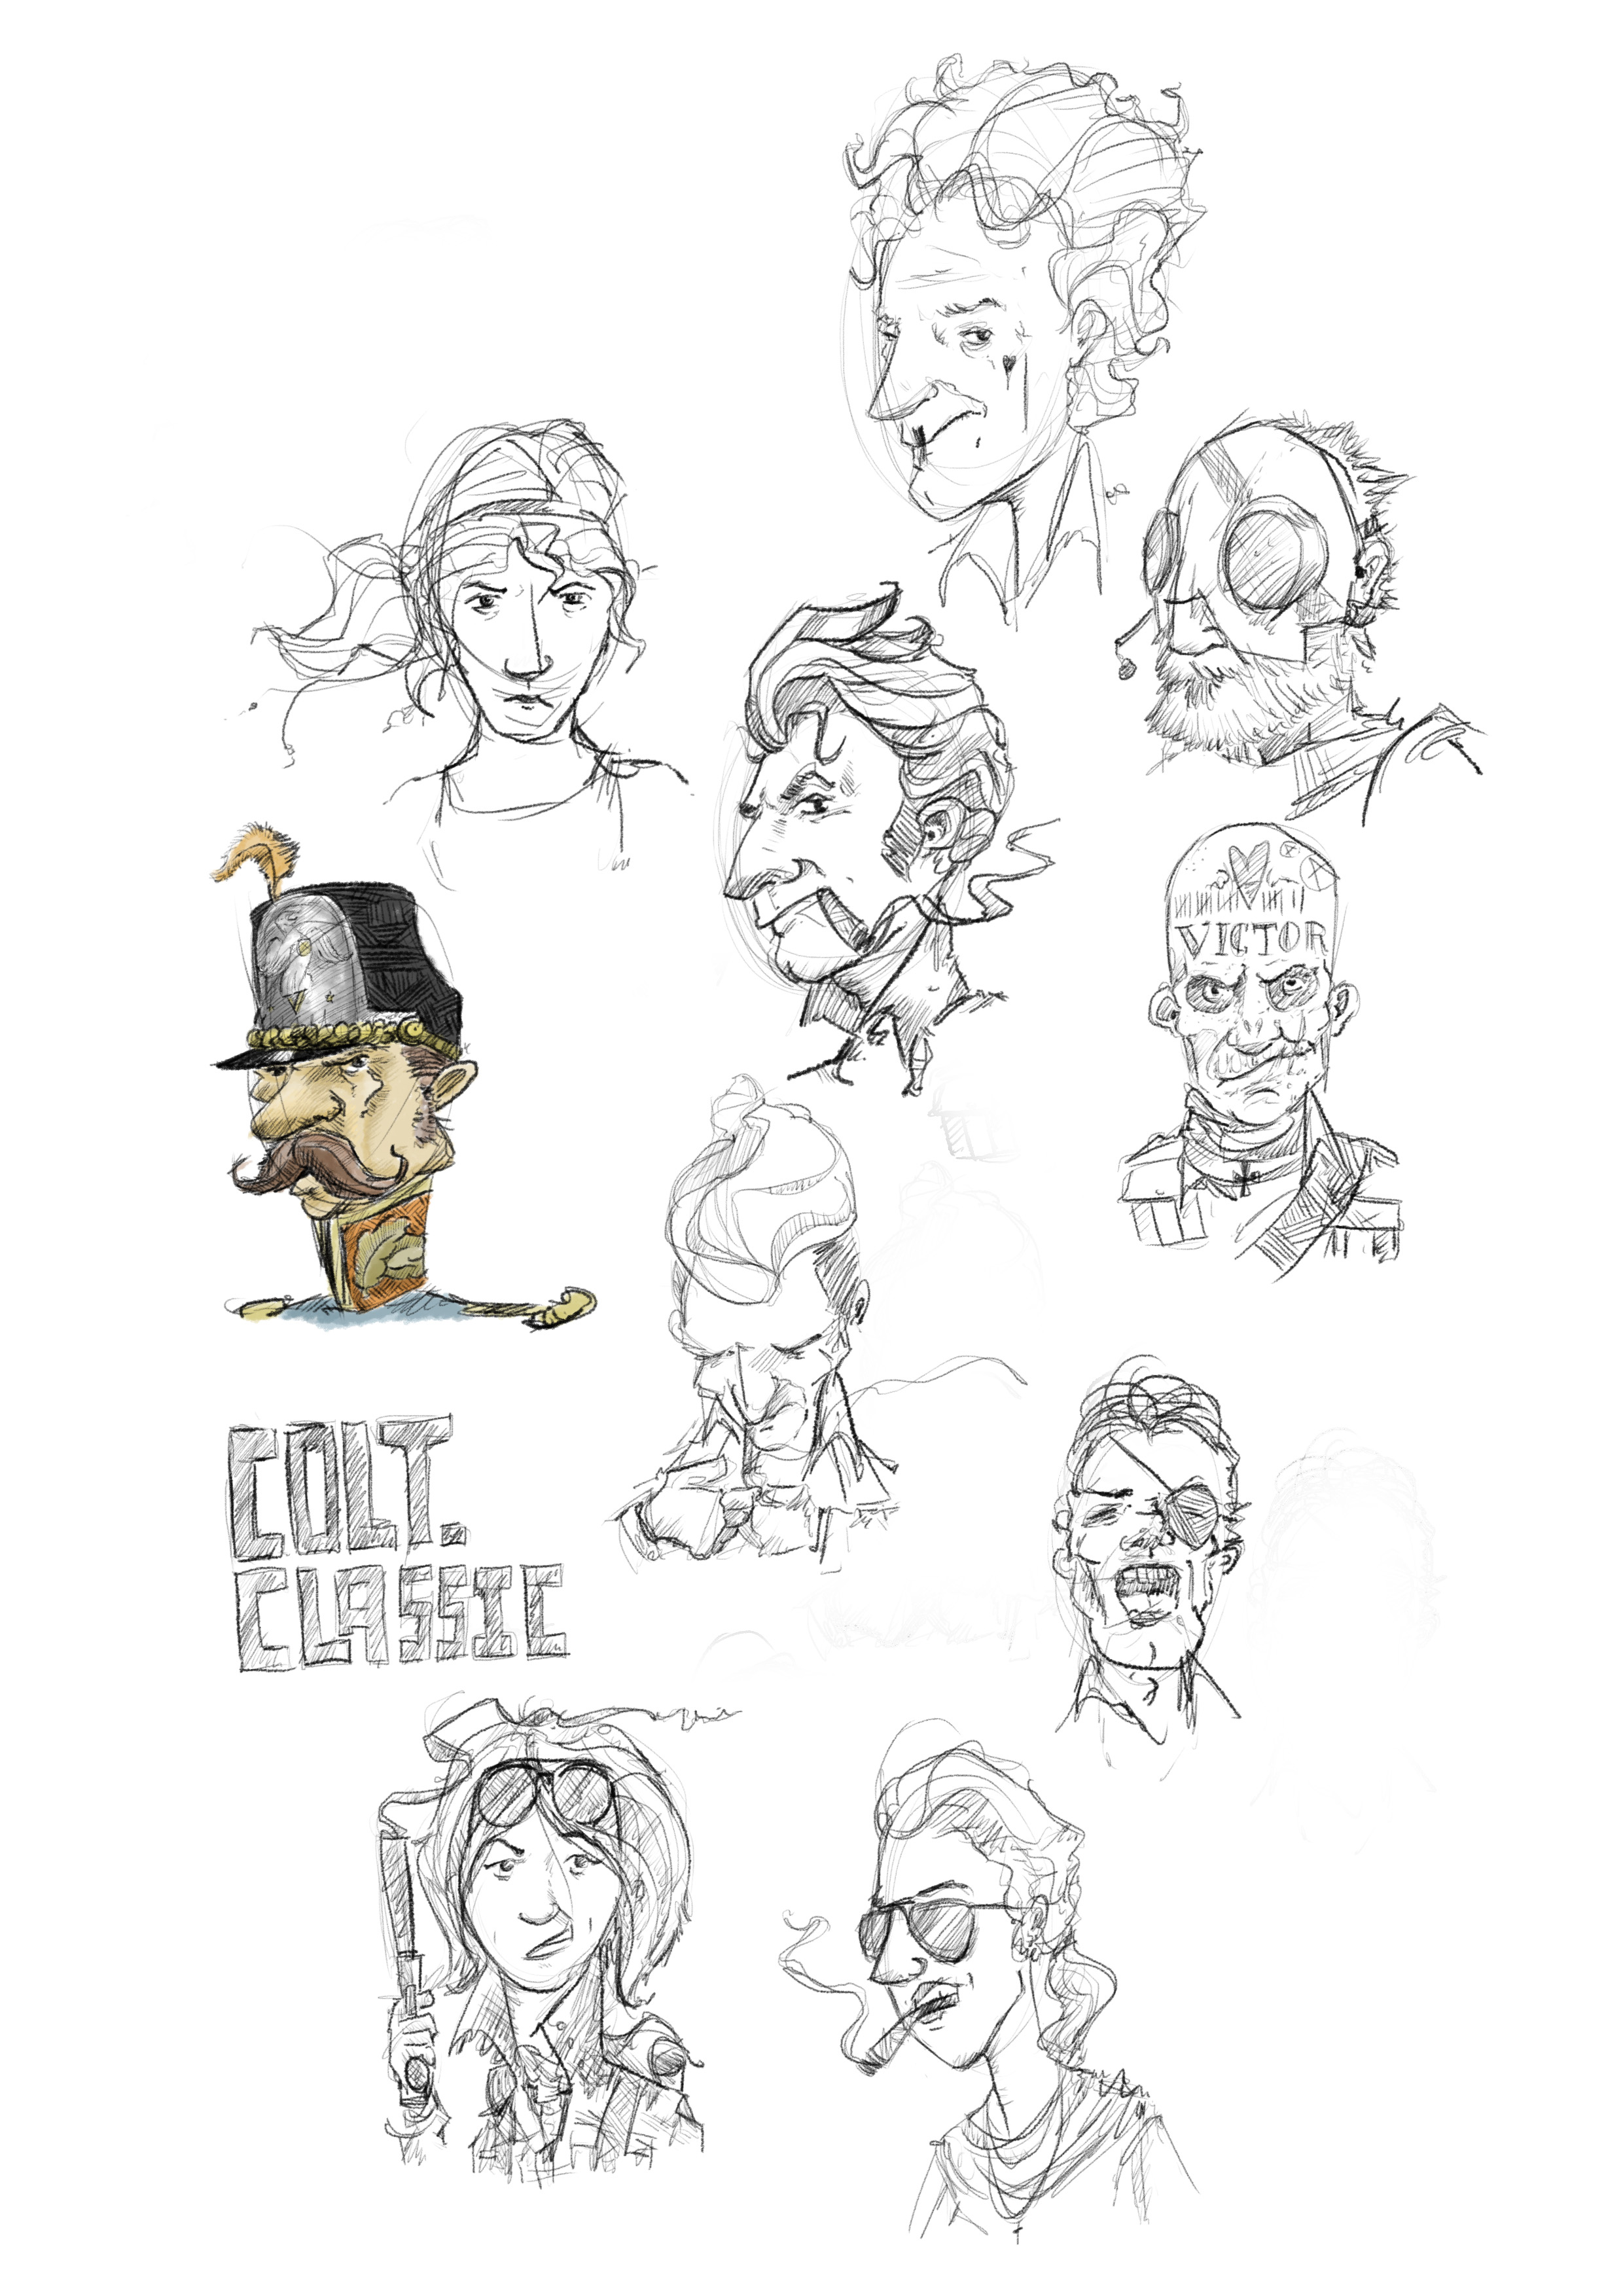 Oliver character art